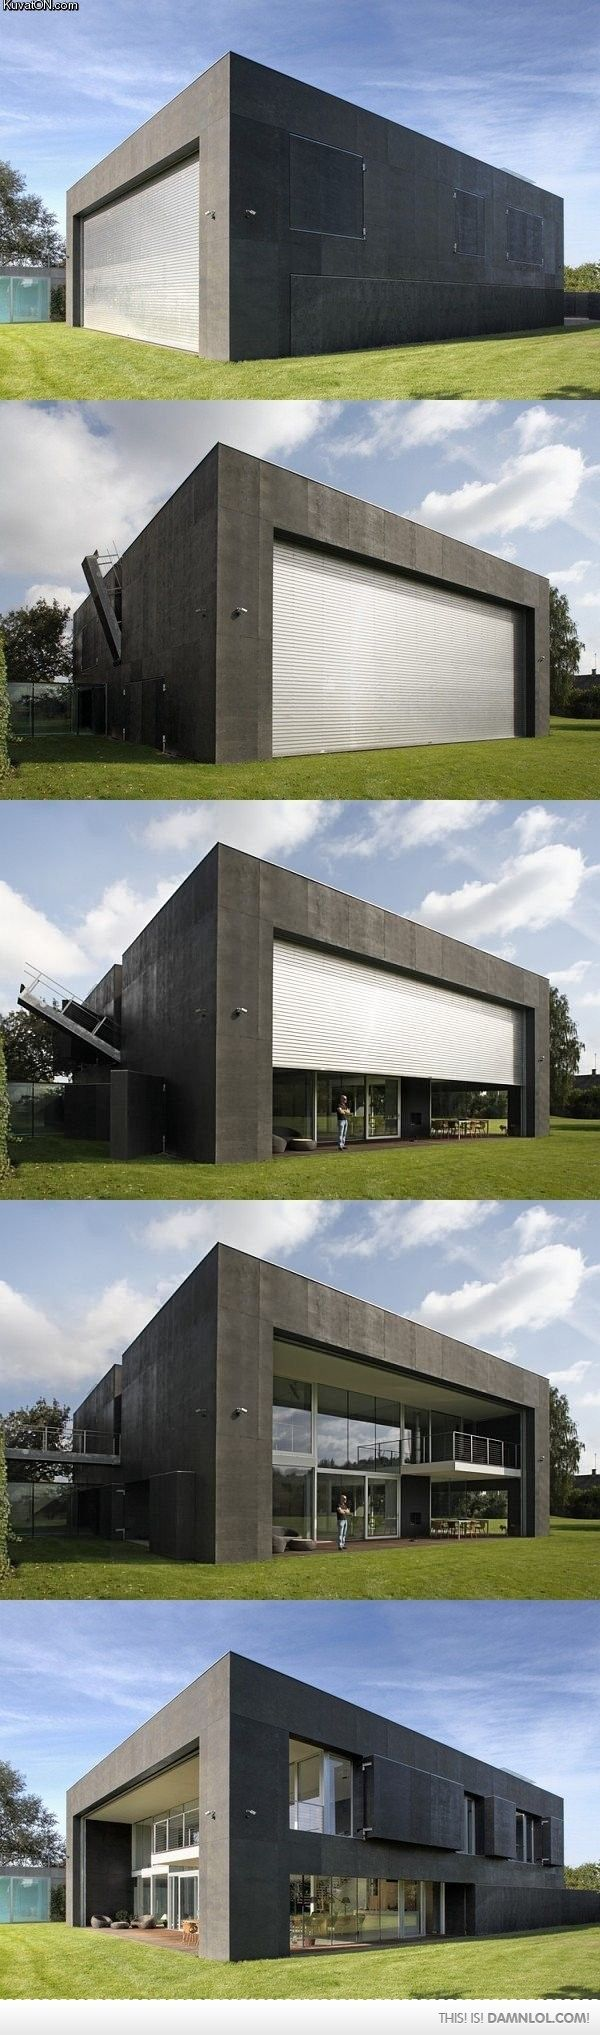 24 best Zombie proof houses images on Pinterest | Zombie proof house Zombie Proof House Design Projects on oban & 2 by agushi workroom design, coach house design, guard house design, minecraft hut design, minimal house design, defensive house design, home design, zombie cakes design, earthquake resistant building design, modern bunker design, zombie protection house, hurricane proof house design, native house design, best underground bunker design, underground concrete house design, fortified house design, zombie apocalypse house, earthquake proof house design,